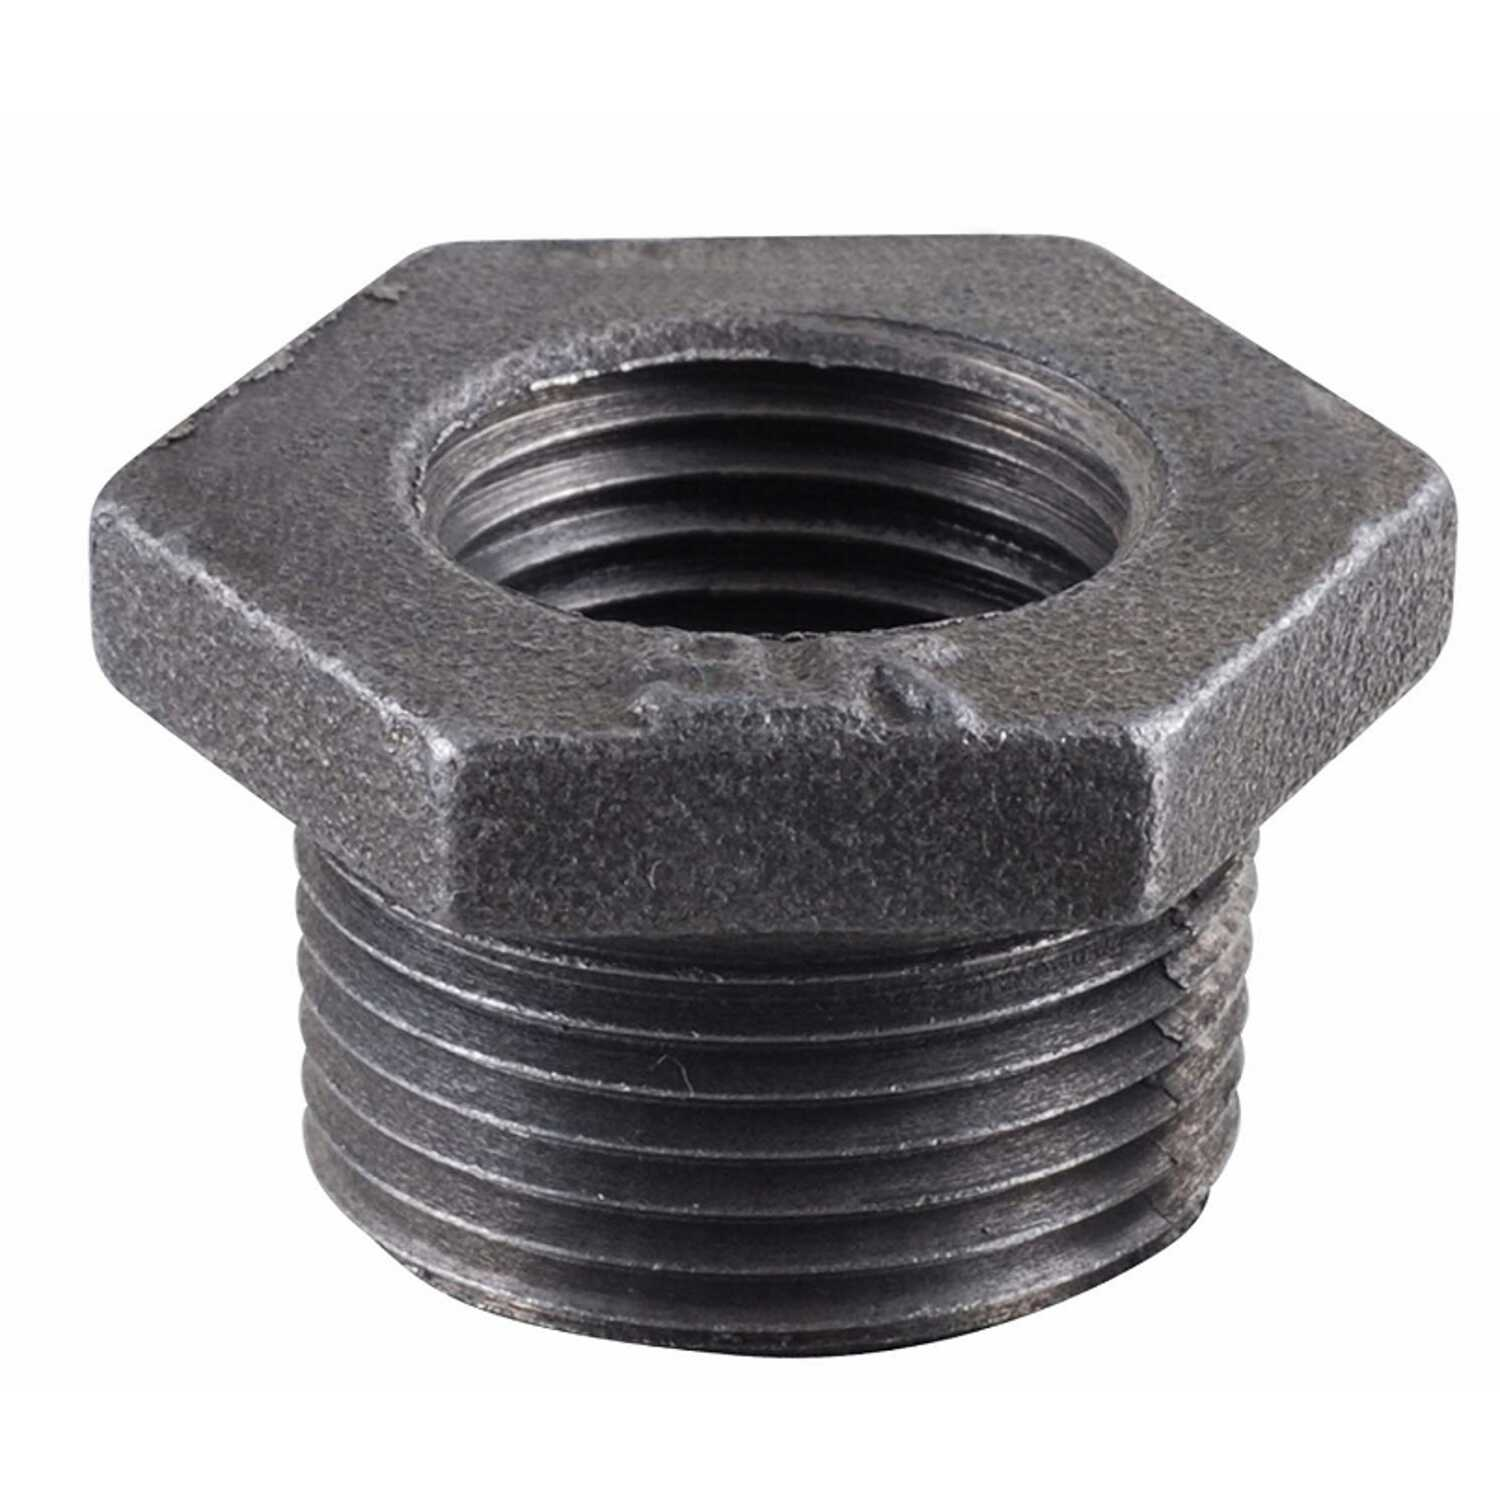 BK Products  2 in. MPT   x 1 in. Dia. FPT  Black  Malleable Iron  Hex Bushing